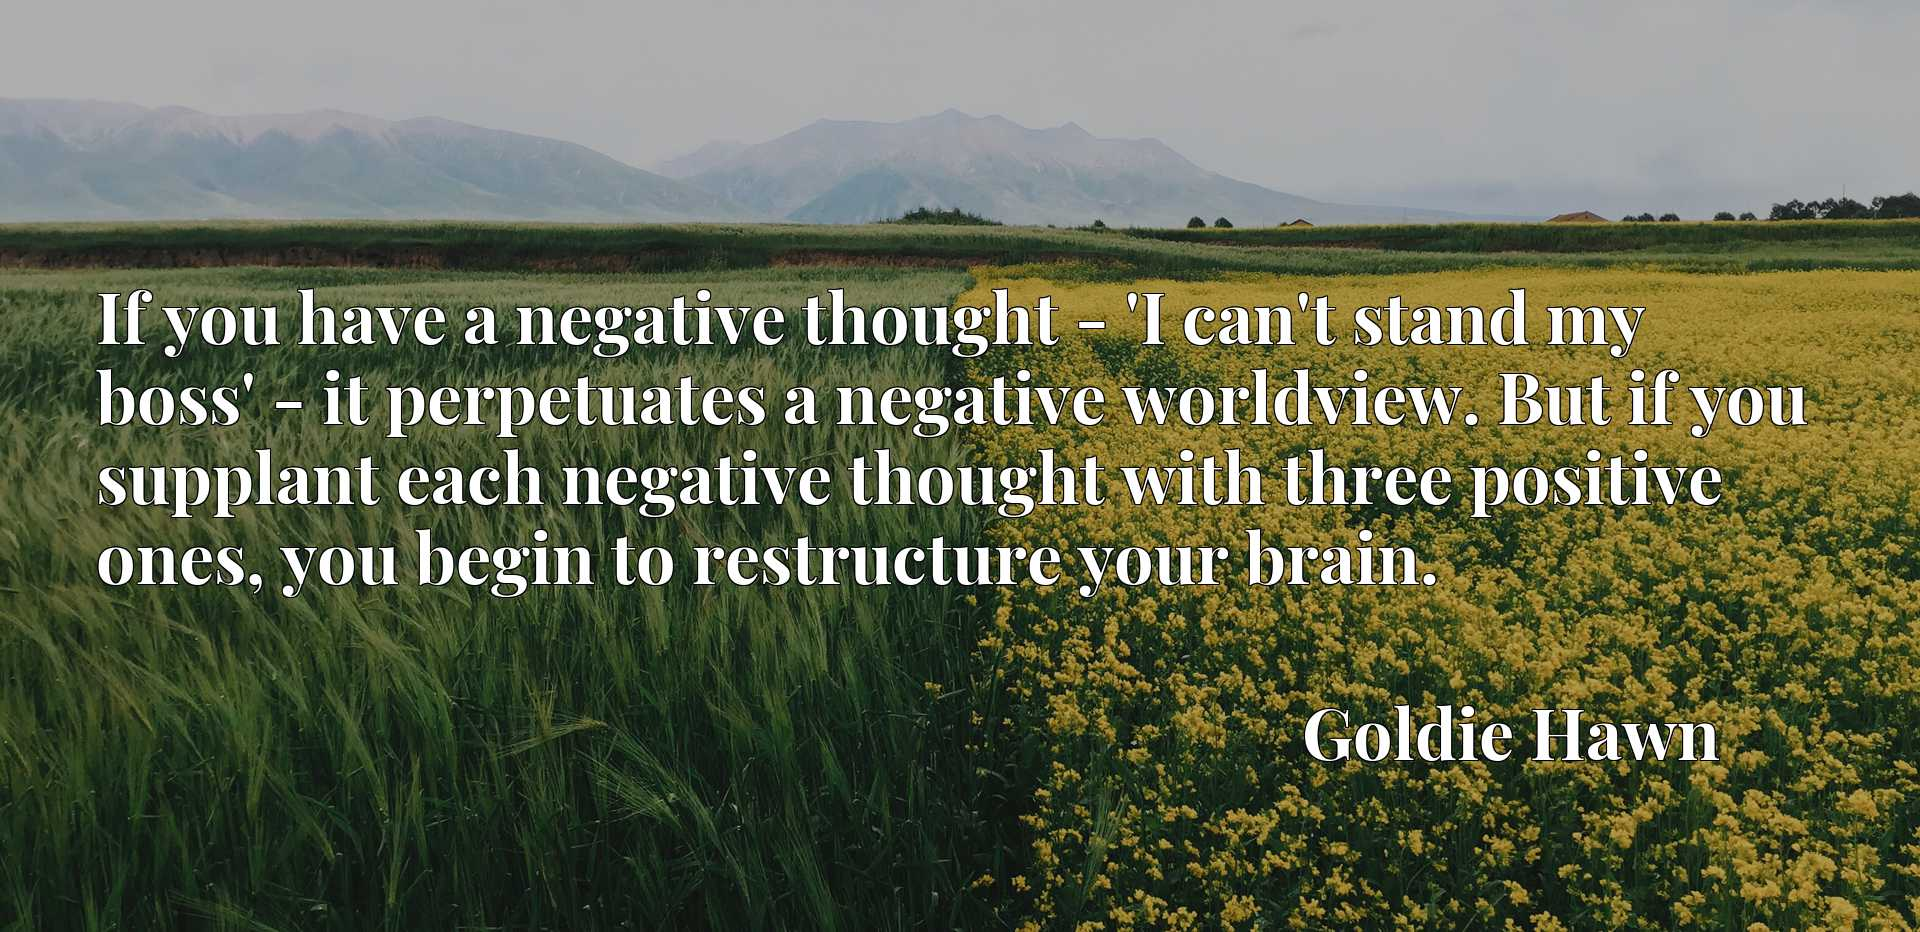 If you have a negative thought - 'I can't stand my boss' - it perpetuates a negative worldview. But if you supplant each negative thought with three positive ones, you begin to restructure your brain.